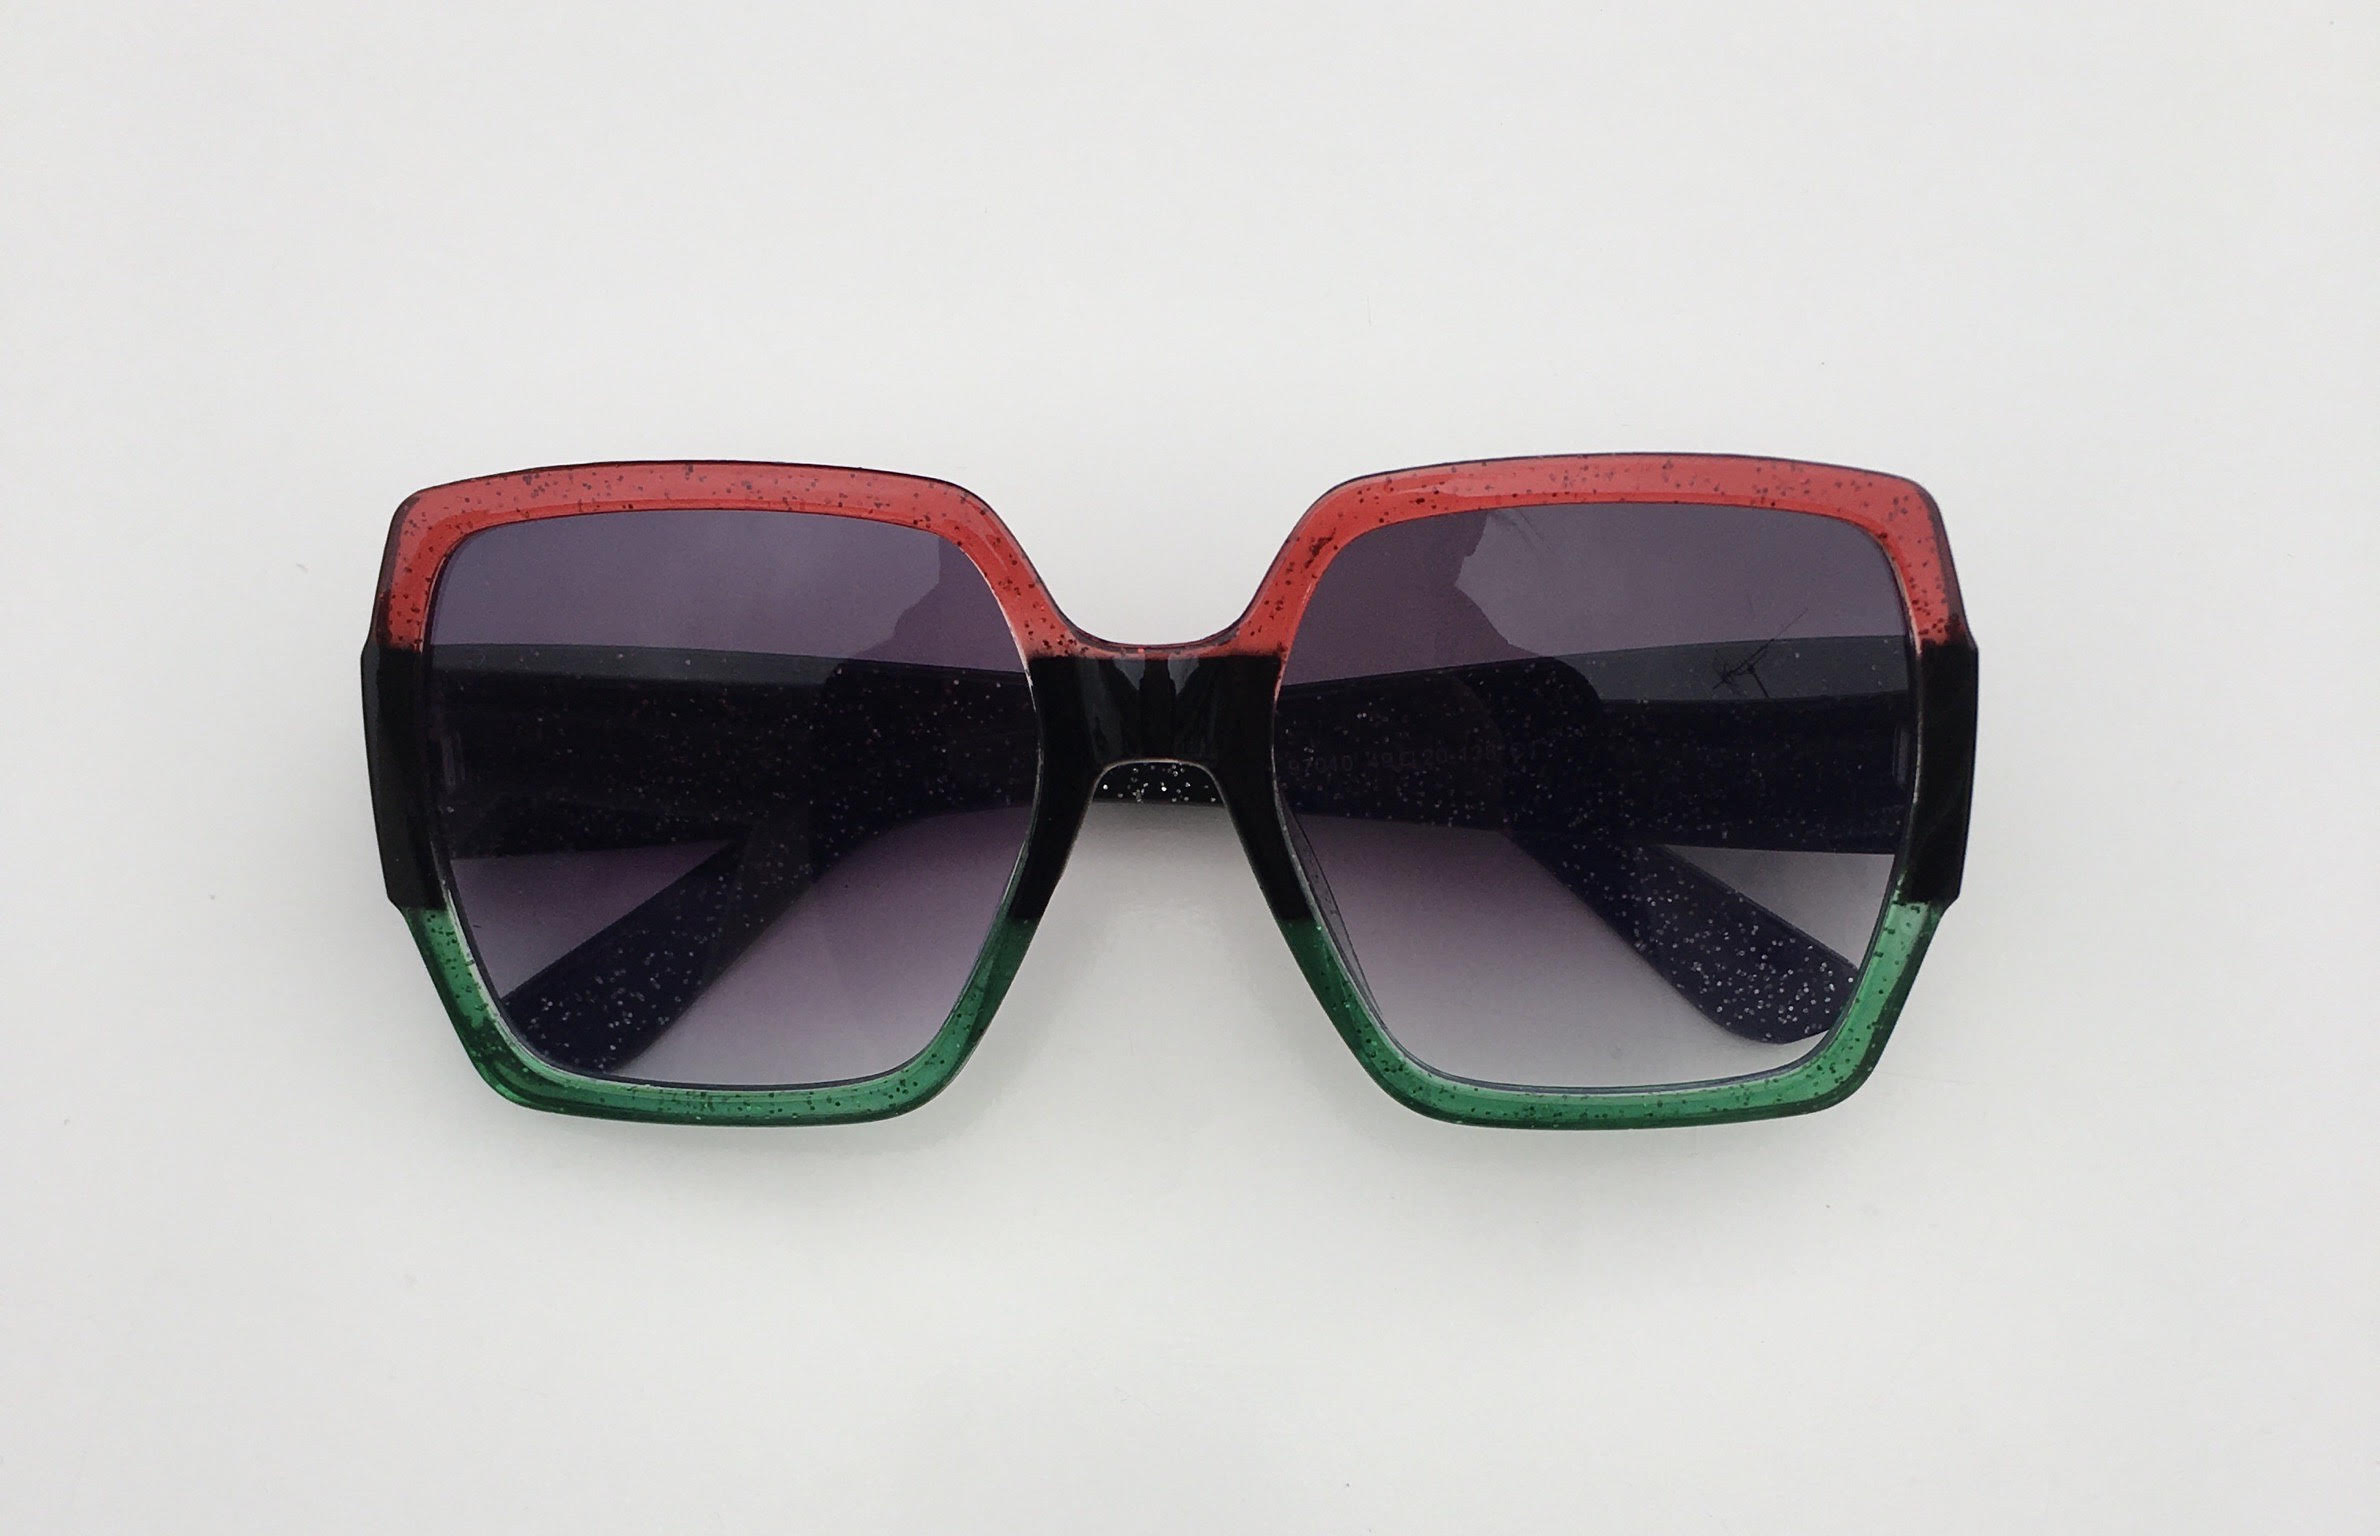 The Kelly Sunglasses